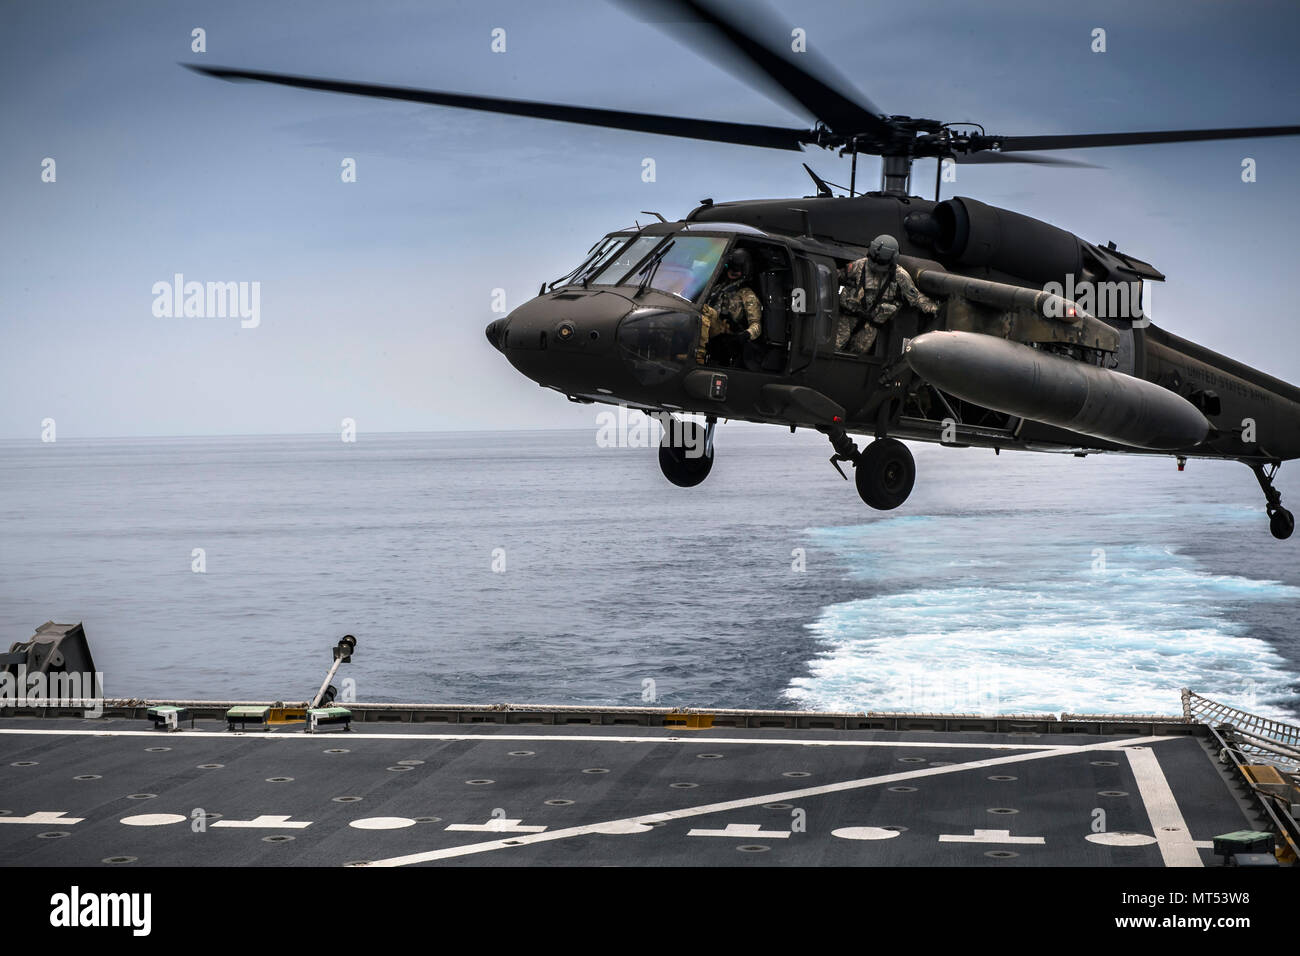 U.S. Army UH-60 Blackhawk from 1-228th Aviation Regiment Charlie Company conduct deck landing qualification aboard the USNS Spearhead off the coast of Honduras in the Caribbean Sea, July 27, 2017. The 1-228th C-Company deck landing qualification consisted of classroom instruction and 5 landings with an Instructor Pilot. Once qualified each Pilot will need to maintain their currency on a scheduled timeline. (U.S. Air National Guard photo by Master Sgt. Scott Thompson/released) Stock Photo